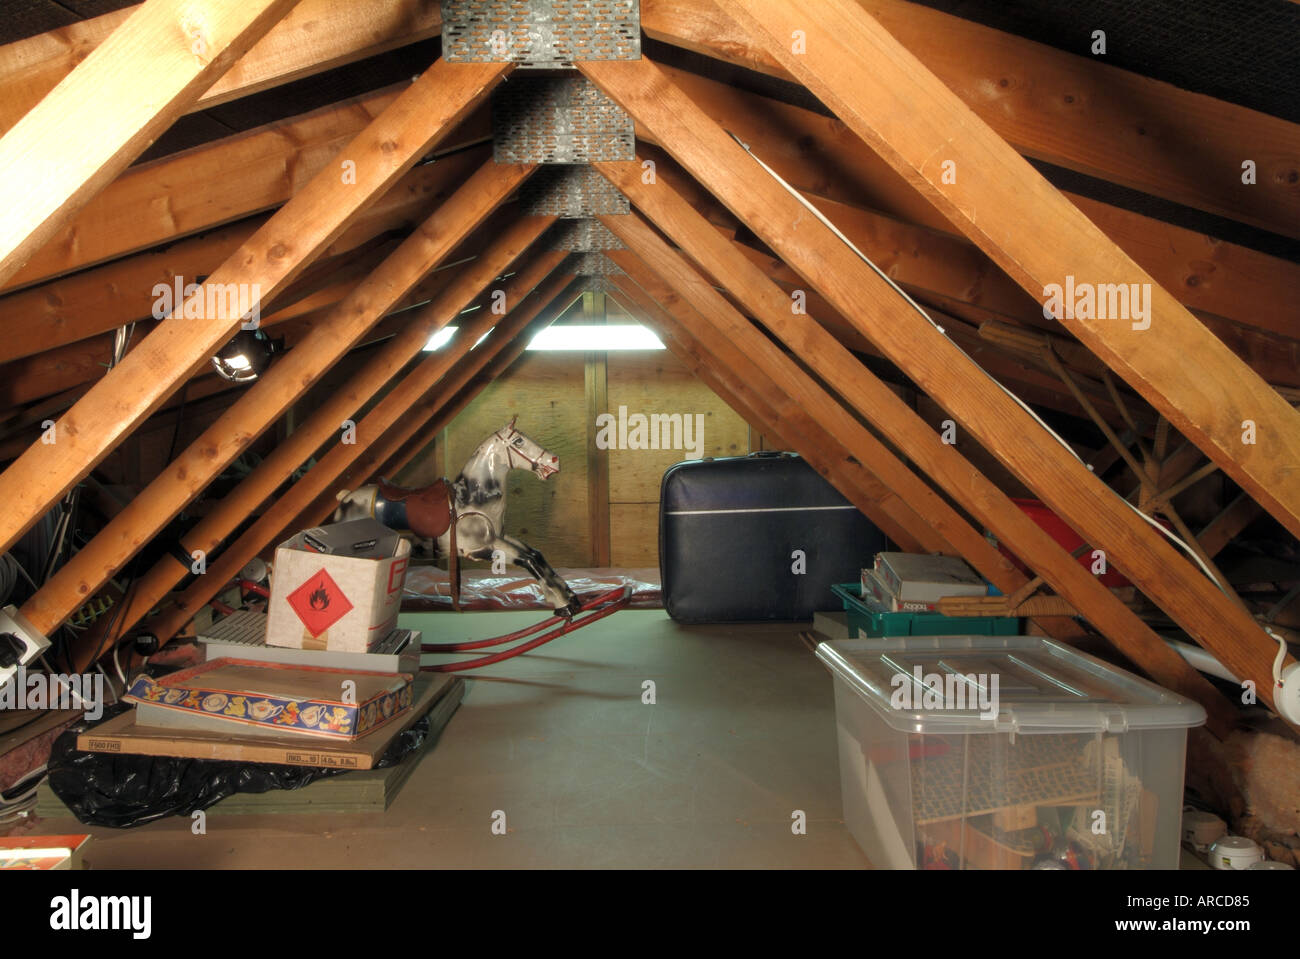 attic storage ideas with trusses - Domestic dwelling loft space low roof pitch showing timber